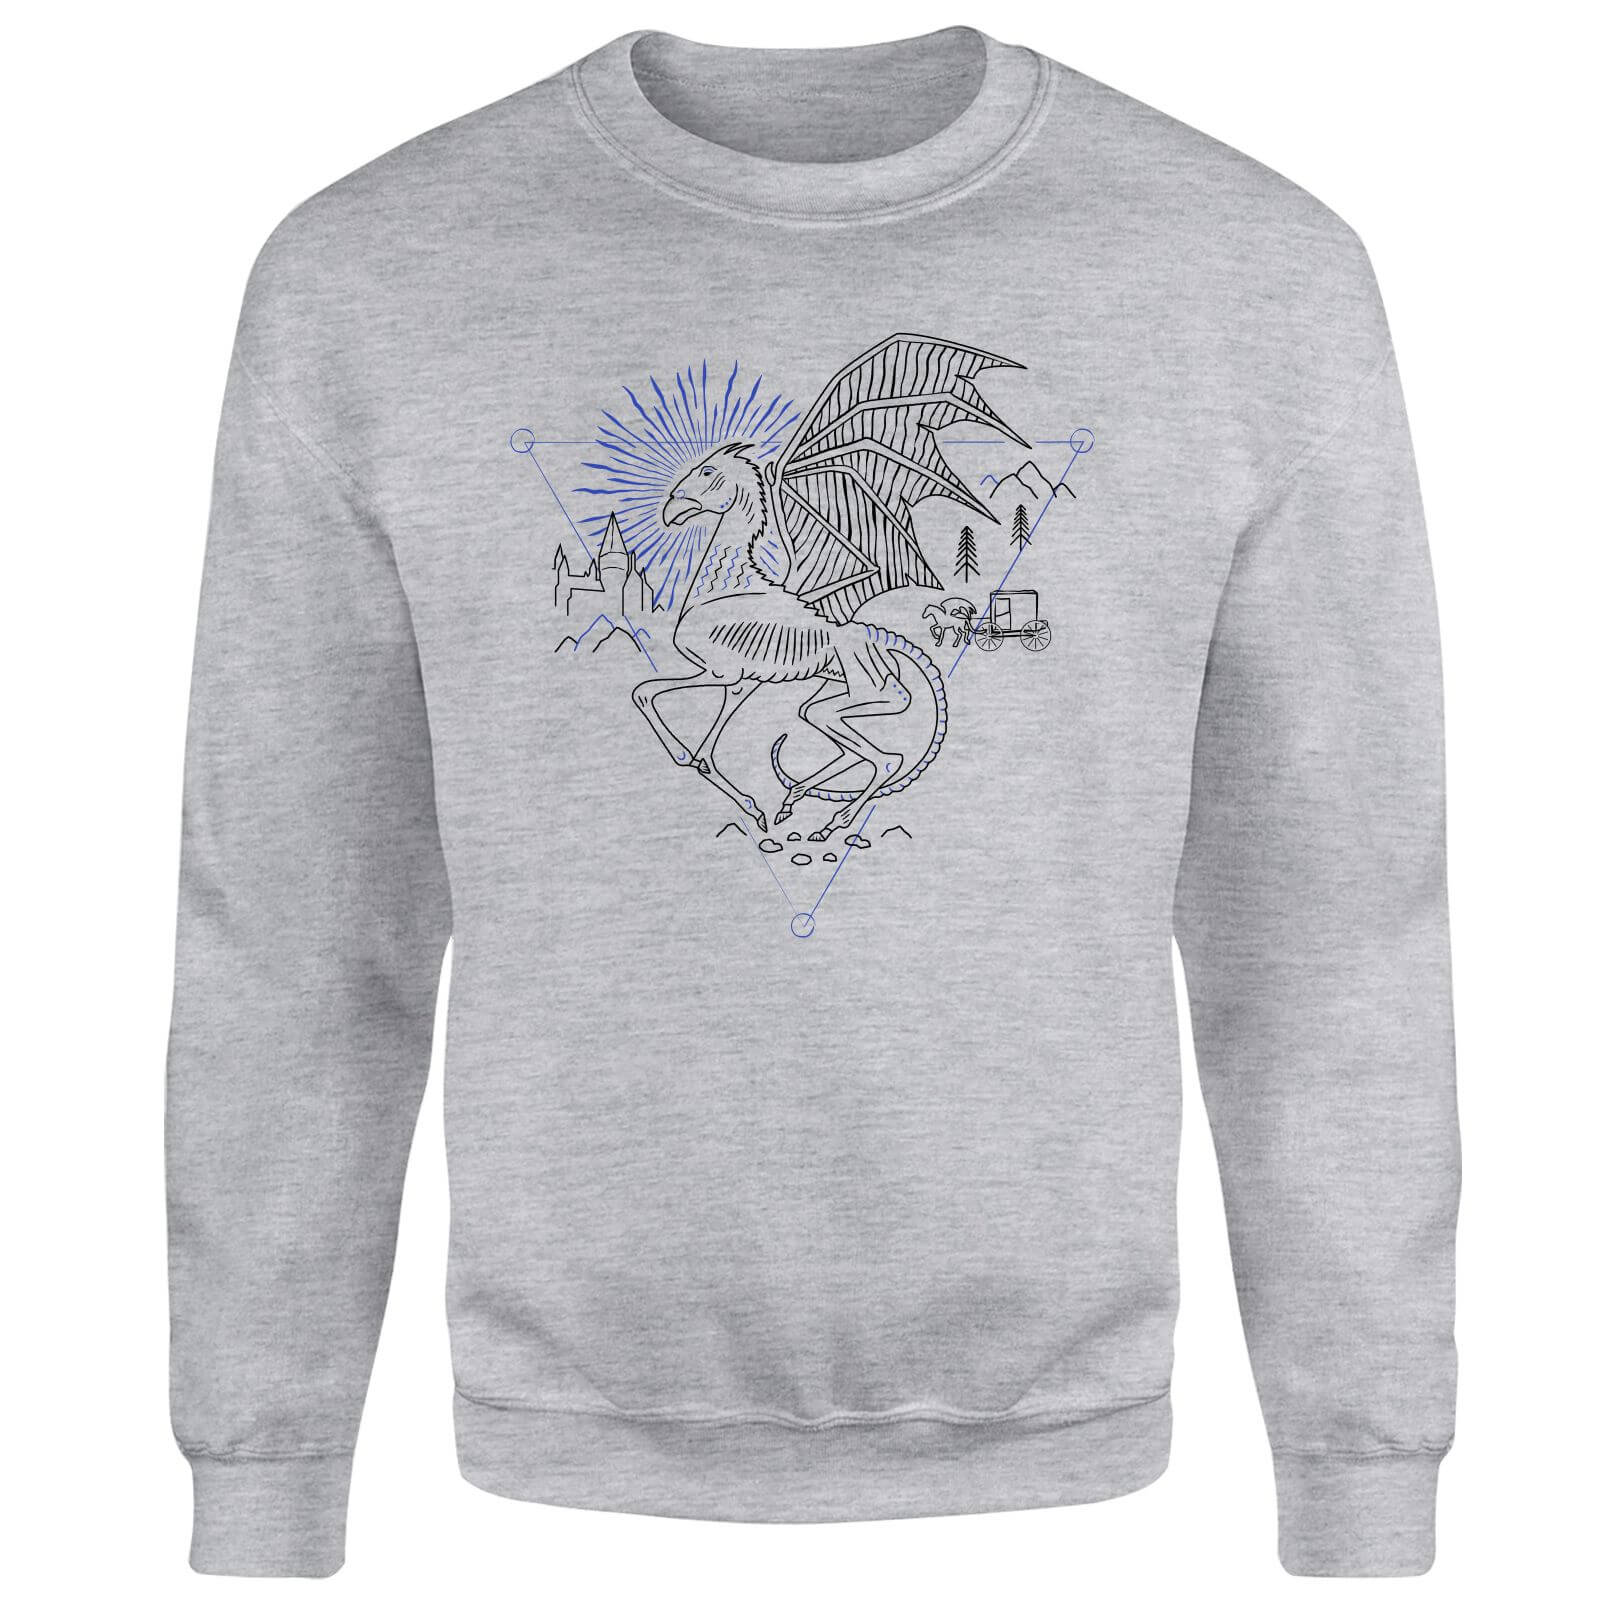 Harry Potter Thestral Line Art Sweatshirt - Grey